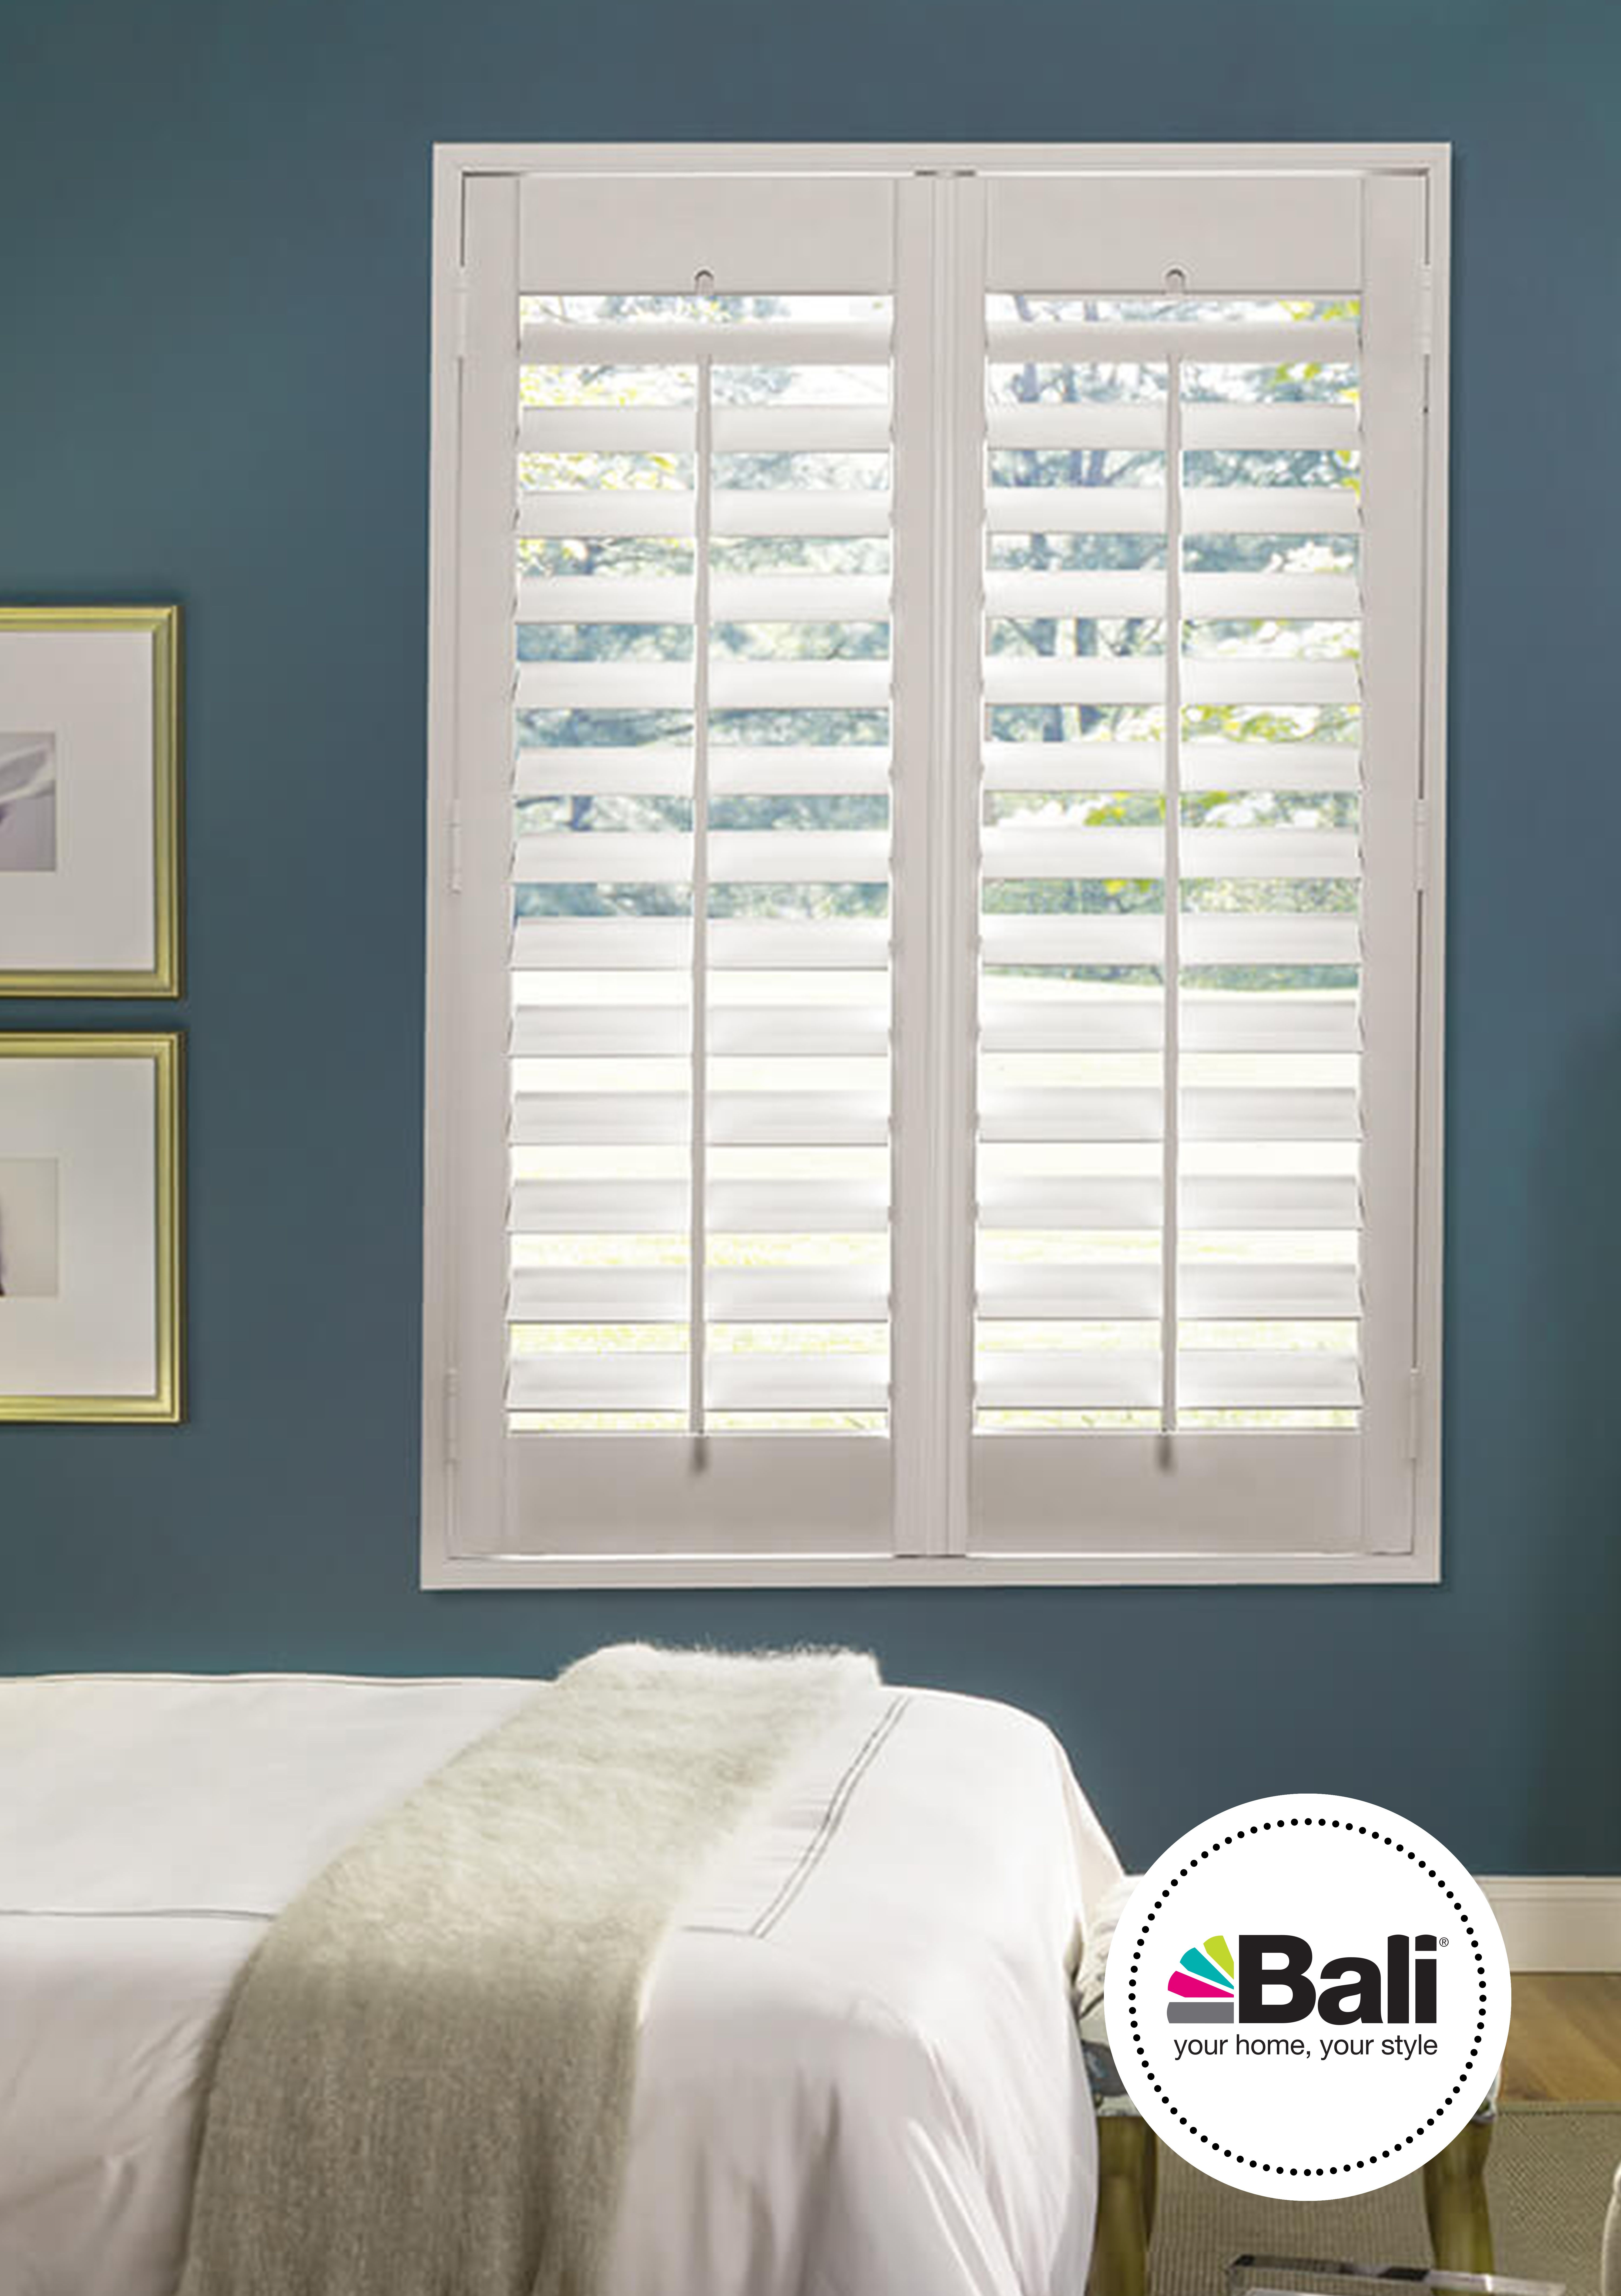 3 1 2 Louvers A Versatile Size That Suits A Variety Of Windows And Improves Your View To The Outside Diy Shutters Bali Blinds Blinds